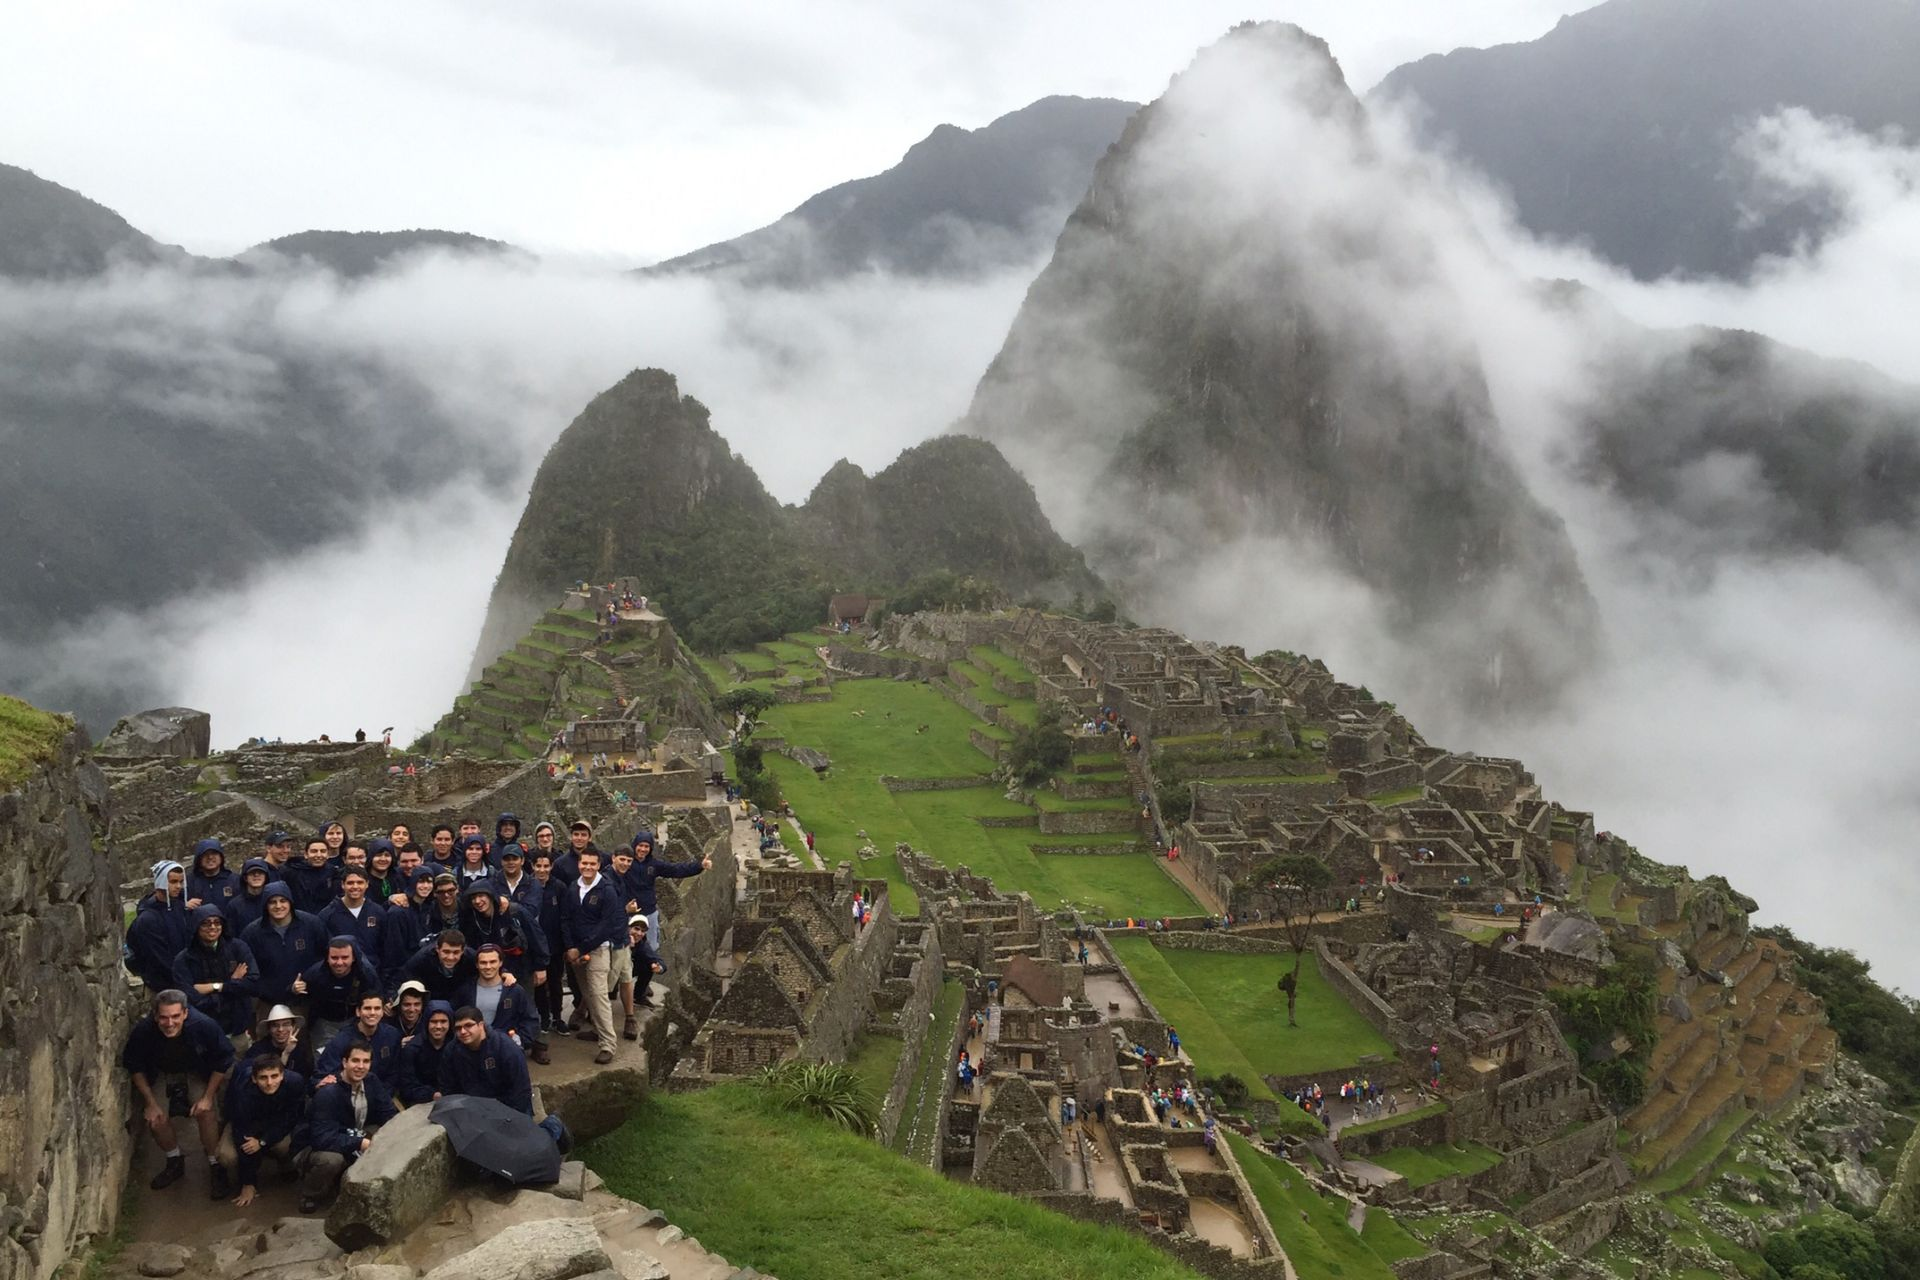 Seniors have the opportunity to travel and visit the ancient Incan ruins of  Machu Picchu.